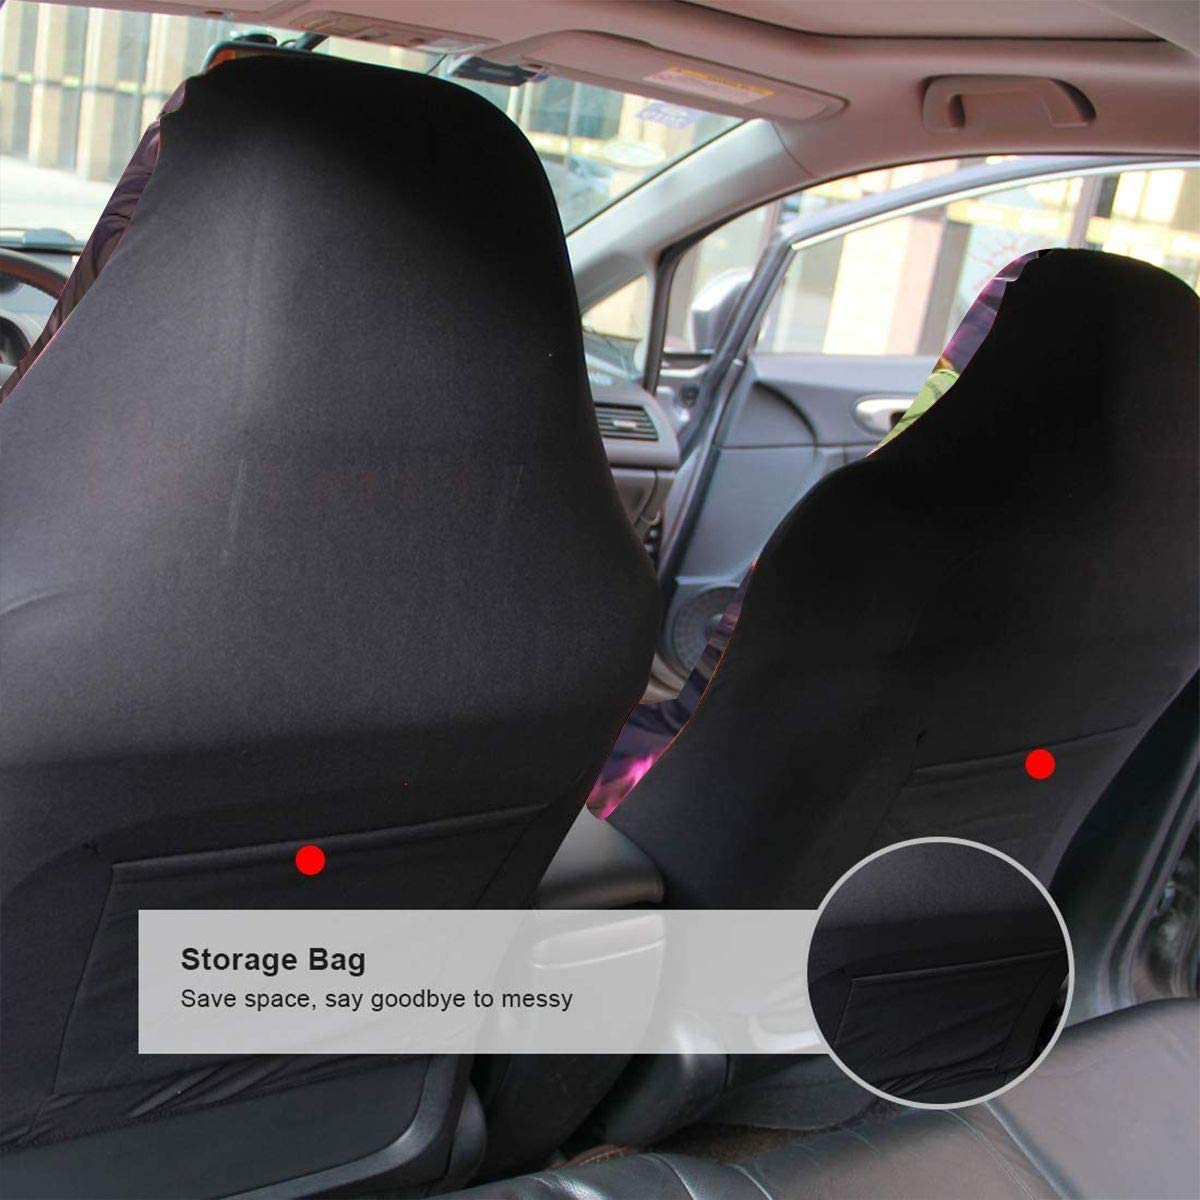 Demon Slayer Anime Car Seat Covers Premium Flat Universal Fit Automotive Mat Covers Front Back Auto Seat Cover Vehicle Seat Protector Fit Most Car Sedan 1 PCS